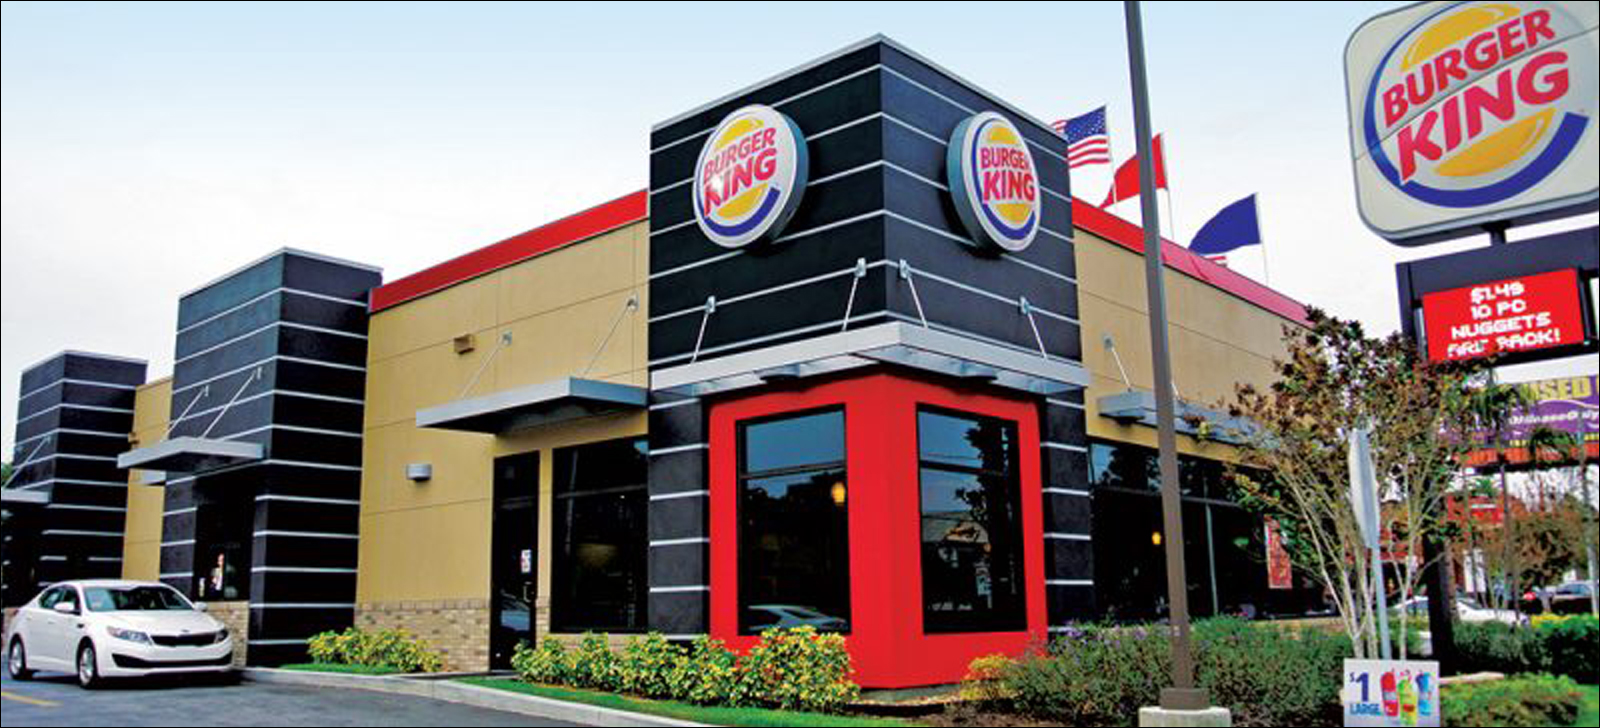 Hamburgers, automobiles and your business